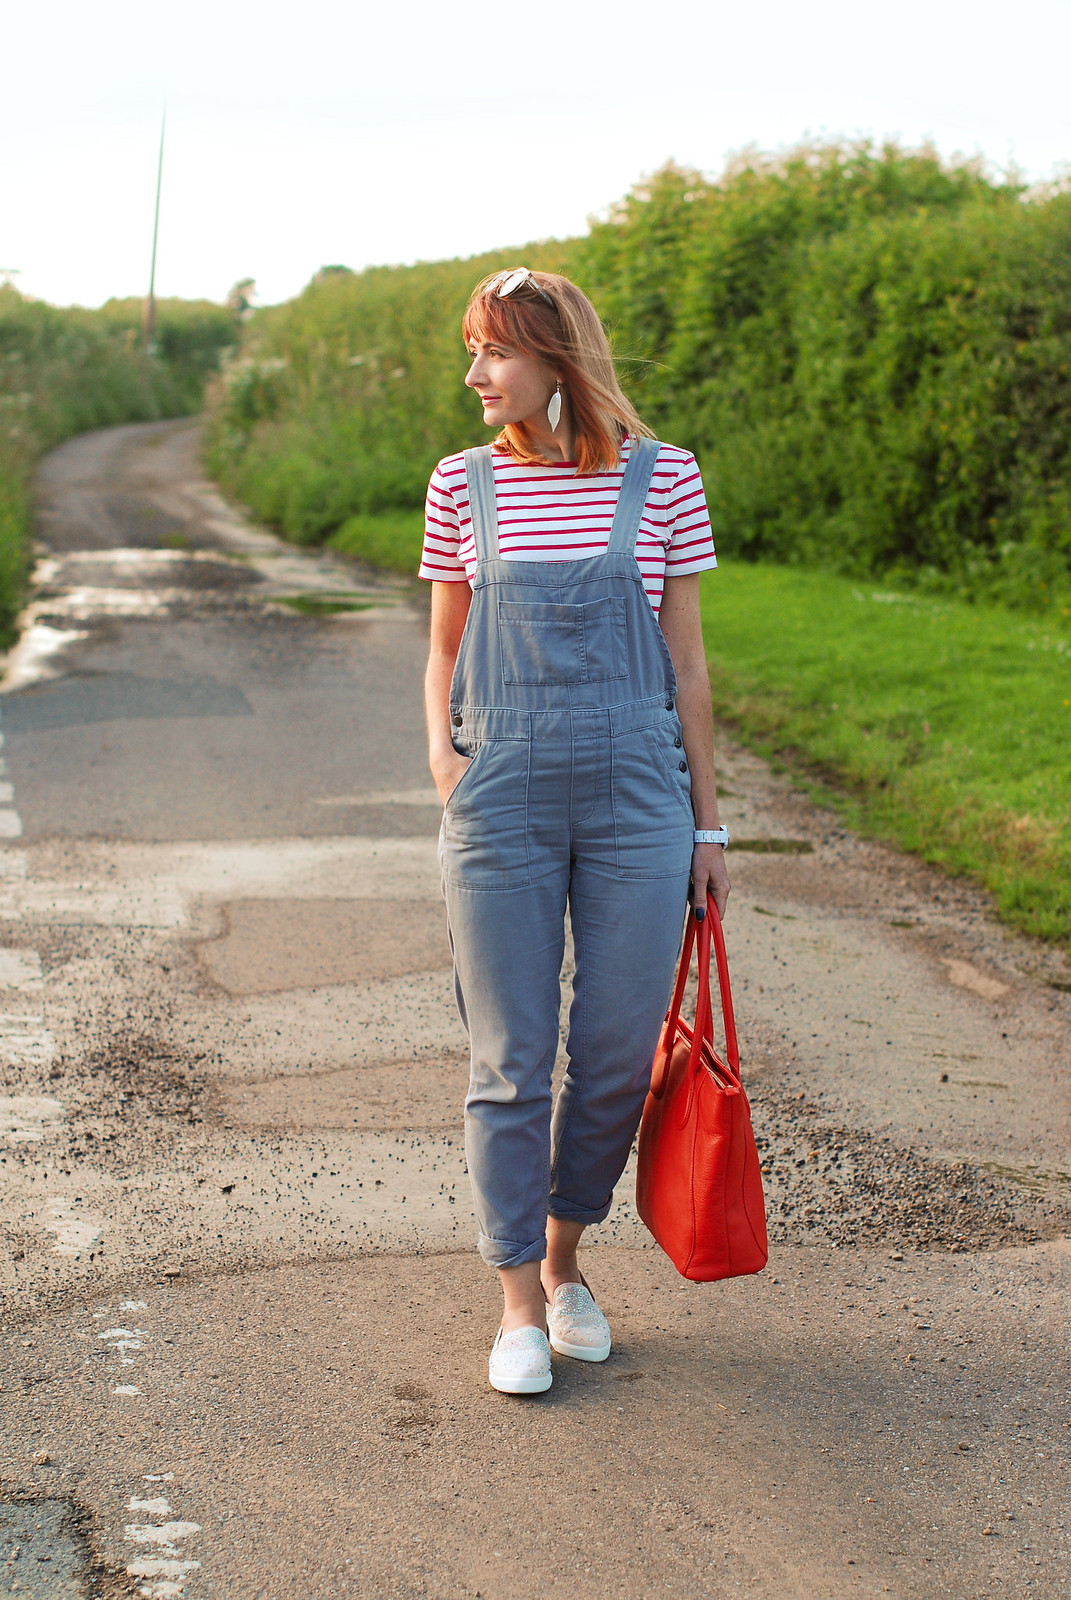 Casual spring summer look: Red Breton stripe t-shirt, grey dungarees, sparkly slip ons, orange tote | Not Dressed As Lamb